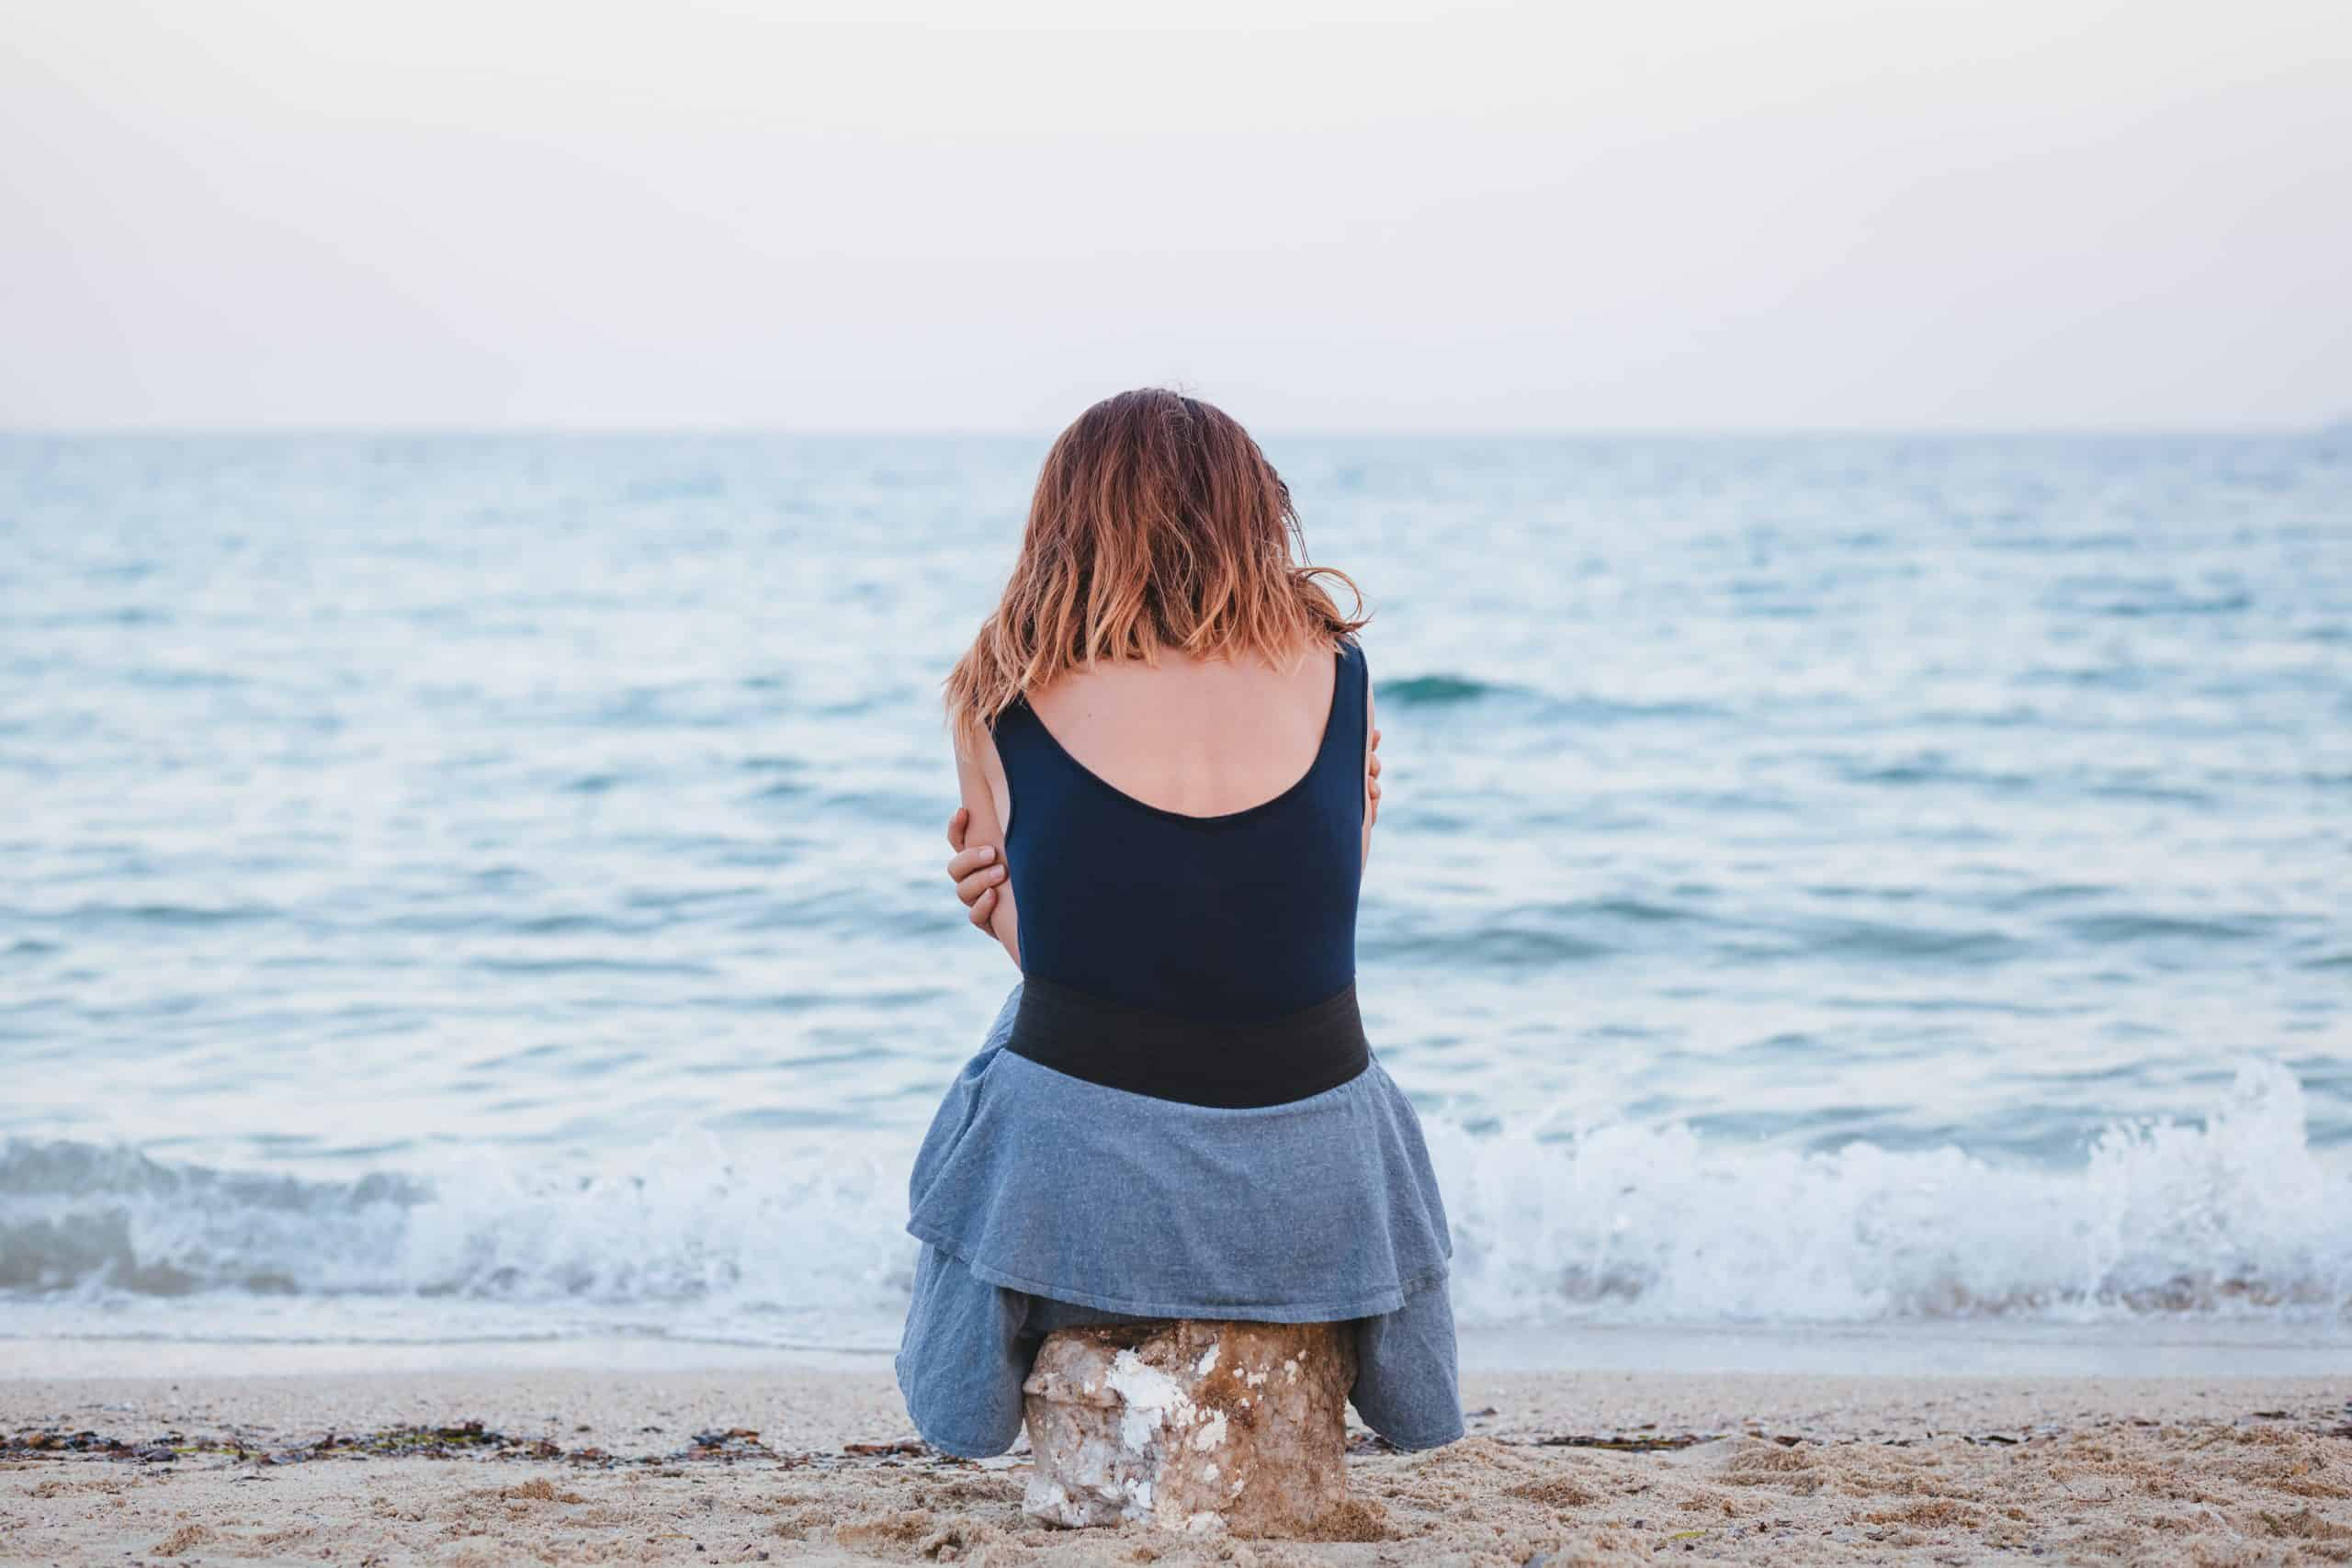 Woman alone on the beach